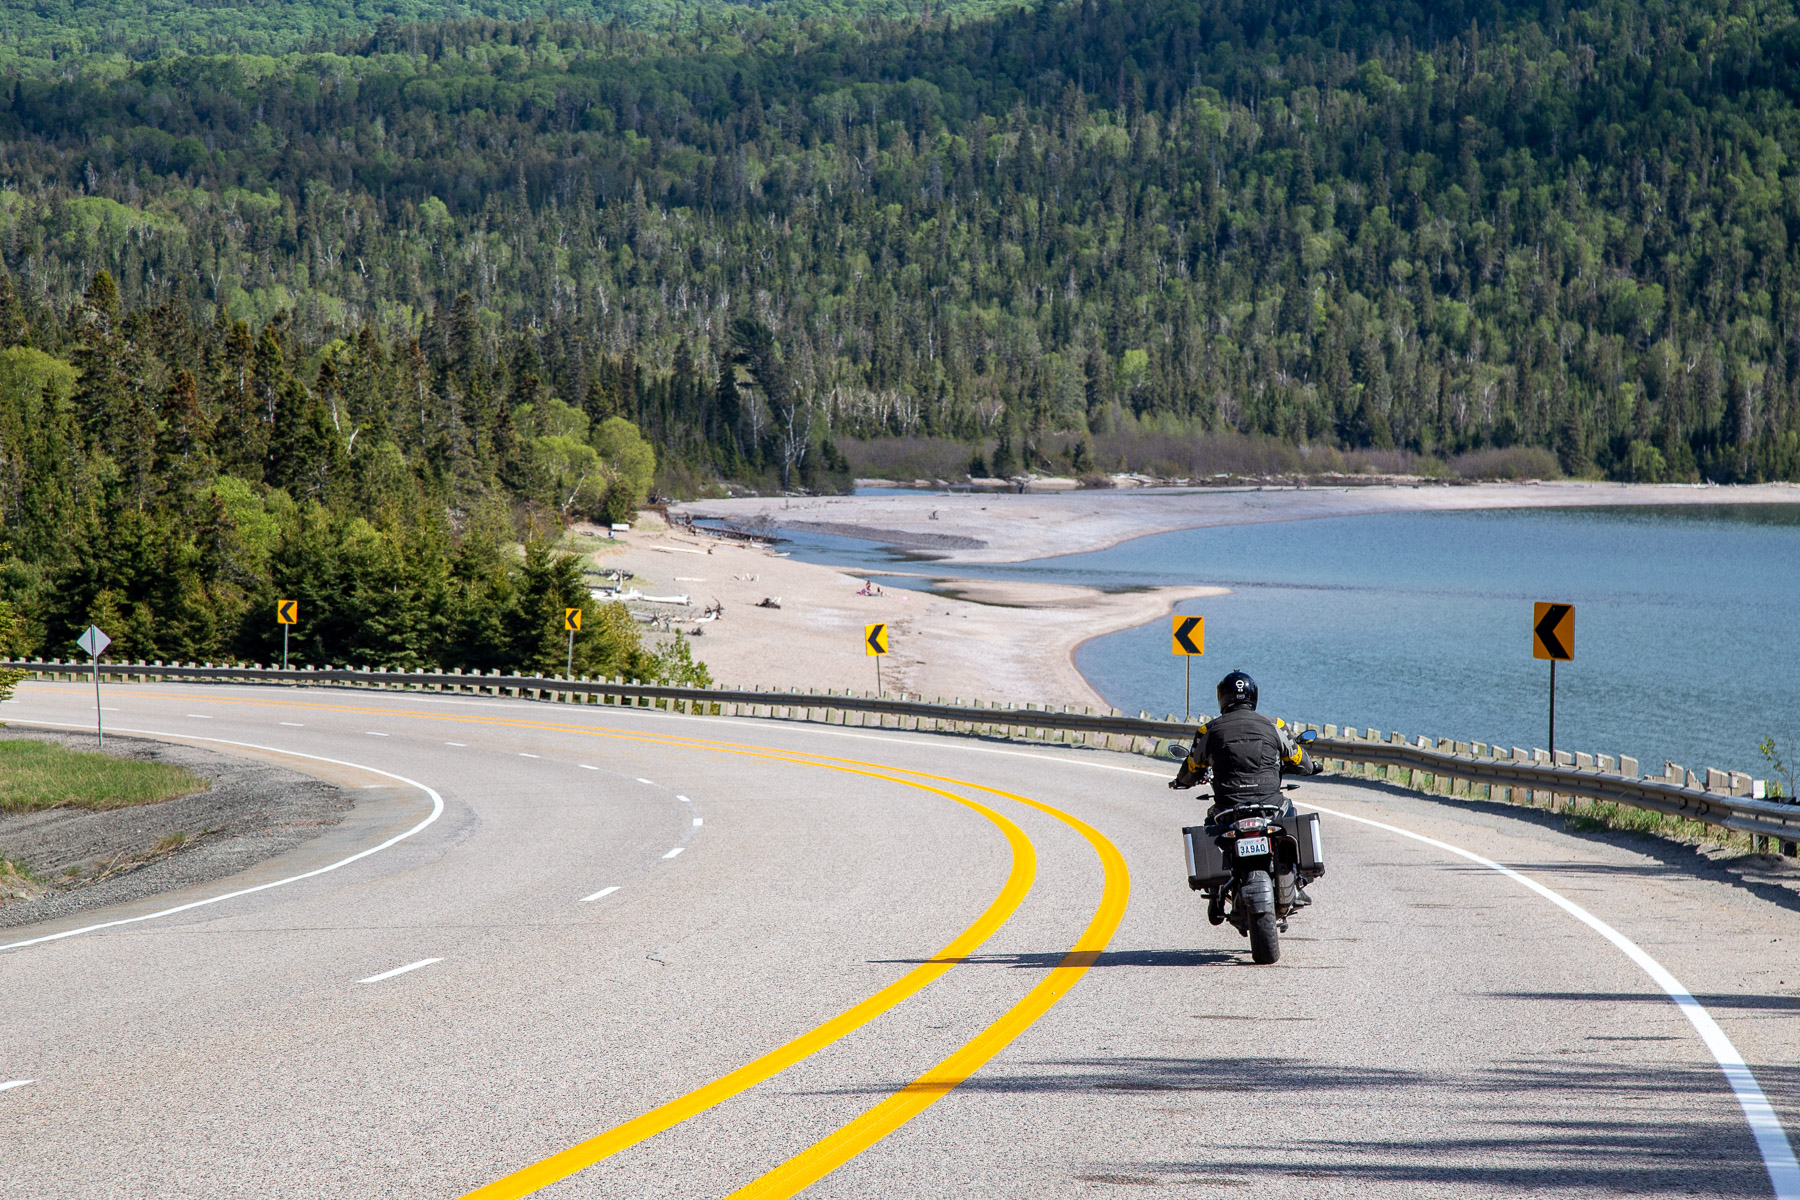 Upsizing the Grand Algoma—Part 2: Wawa and Beyond - Putting five days of freedom to good use checking out the Deer Trail and Algoma North Tours on our massive tour of Algoma Country motorcycle routes.